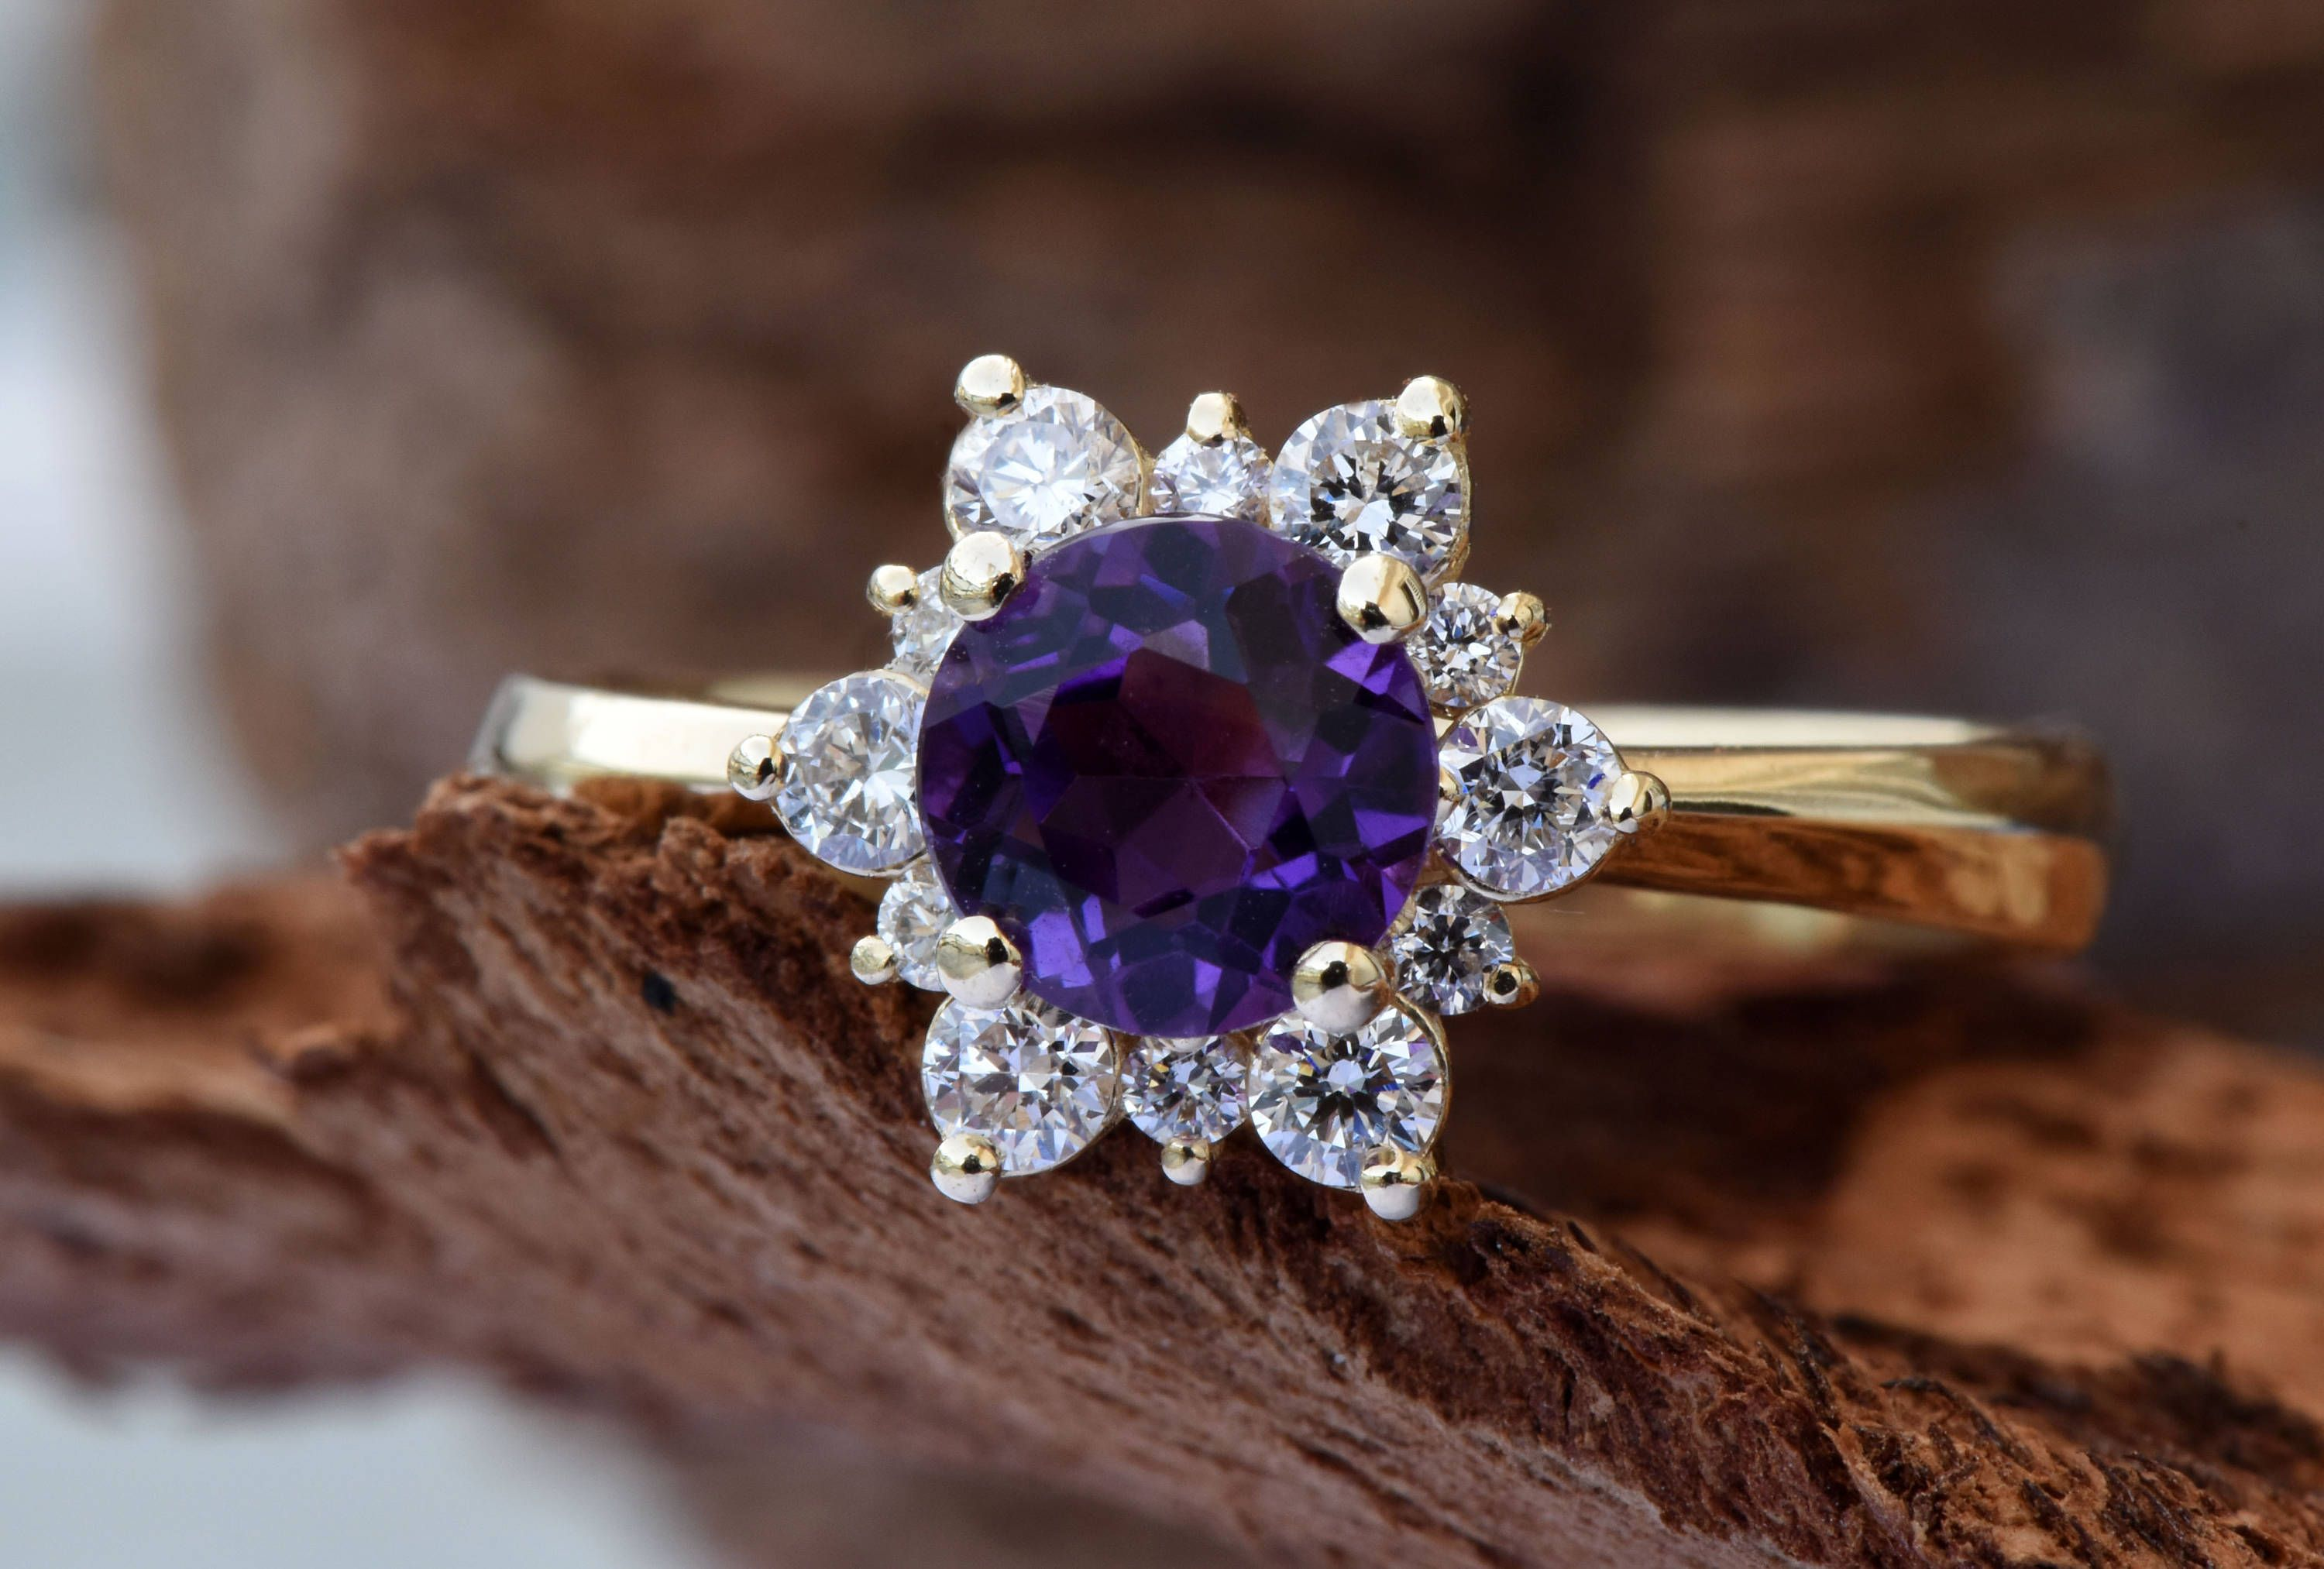 amethyst rings antique diamond rose at and georgian ring amethist j cluster org engagement id cut jewelry